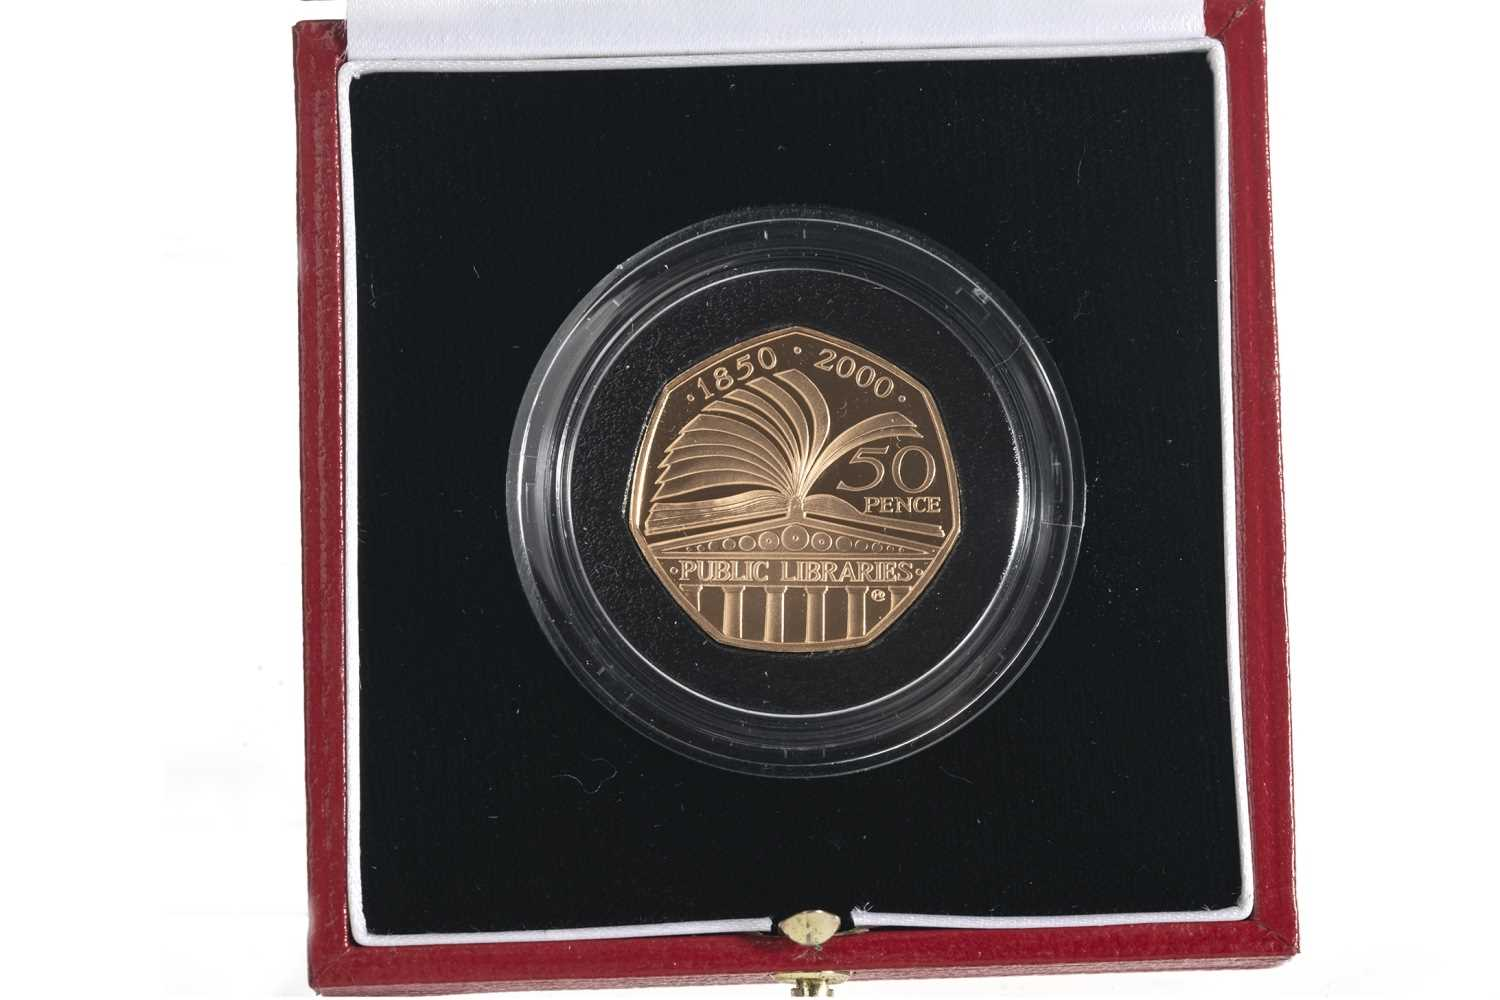 Lot 26-2000 GOLD PROOF PUBLIC LIBRARIES 50P COIN